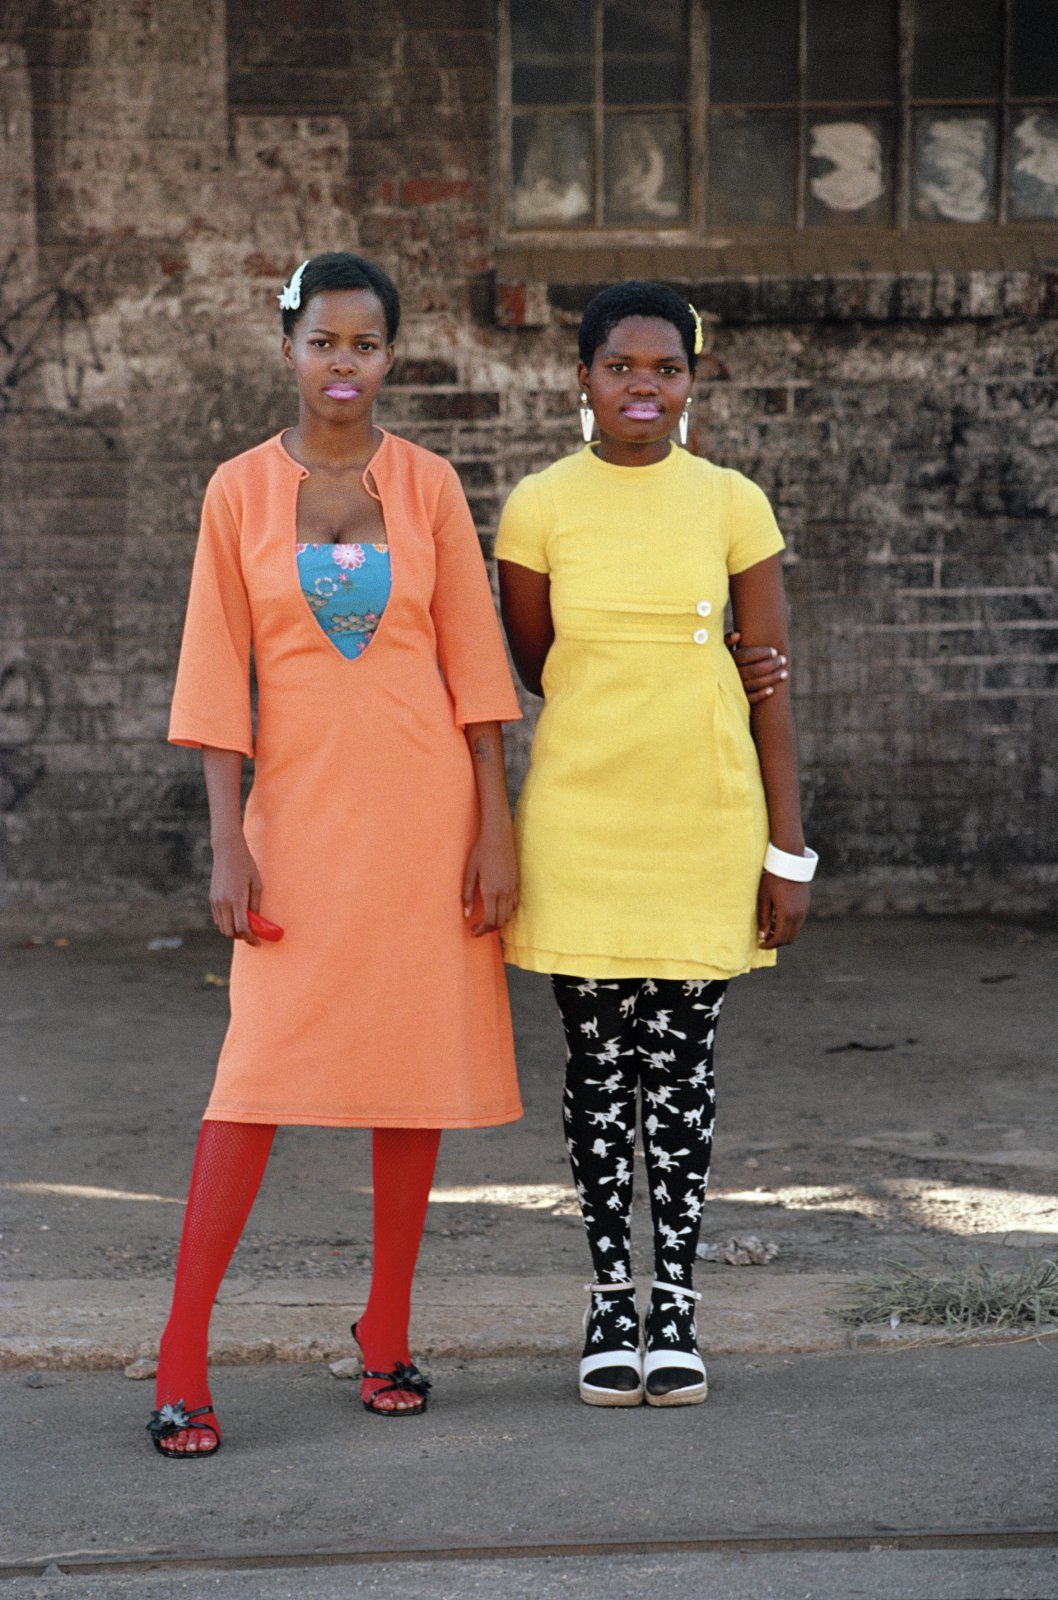 Cindy and Nkuli, 2003 © Nontsikelelo (Lelo) Veleko, courtesy The Walther Collection.